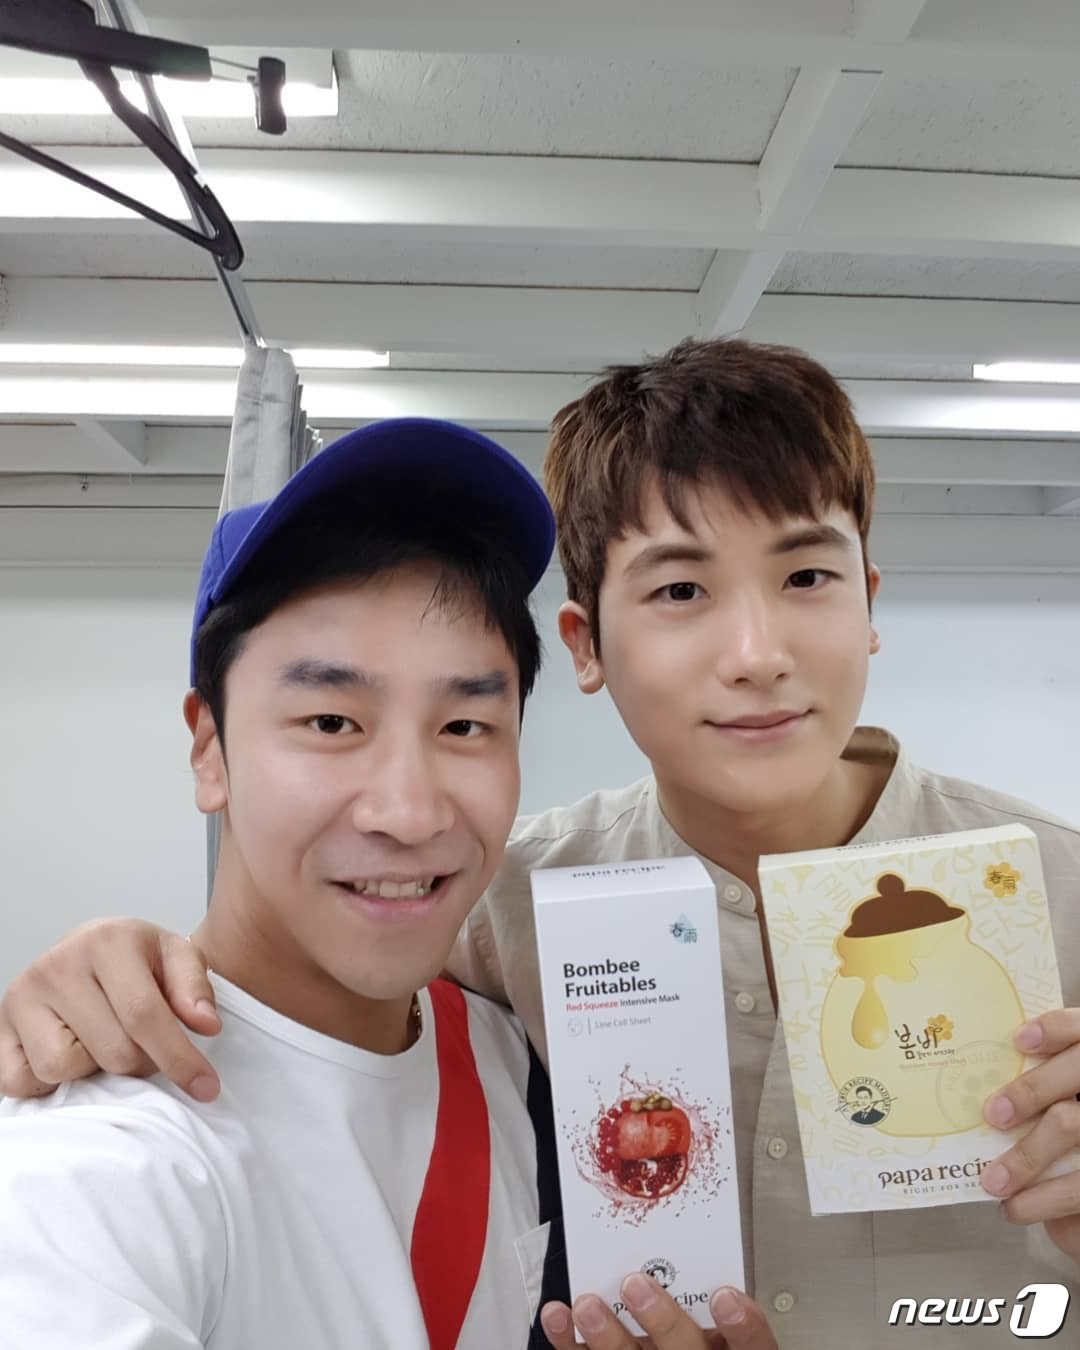 <p>Park Hyung-sik will be active in domestic model of daddy recipe following the expiration of singer Gimcheon. In the Chinese region model, the daddy recipe was selected in March Blue Blue. He is the youngest brother of the top actress Fan Bingbing and has emerged as the next generation rookies in the Greater China region.</p><p>◇ Suits active in Park Hyung-sik, August 8 Activities with some Daddy Recipe Model</p><p>According to the related industry, the nose story made a contract with UAA (United Artists Agency), which belongs to his office, by selecting Park Hyung-sik as the representative face to inform the daddy recipe, according to the related industry. UAA is an entertainment planning company to which Song Hye Kyo and Yoo Ain belong. The daddy recipe plans to expand public relations and marketing in front of Park Hyung-sik from the 8th.</p><p>Gim Han Kyun (34) nose story representative first raised a photo taken with Park Hyung-sik and the representative items of the papa recipe Spring Rain Mask Pack and Clearing Skyline in the hand to the SNS . Kim wrote laughter here saying the appearance that does not require words, the thing that was squat from the side.</p><p>Park Hyung-sik debuted at the 2010 Idol Group Empires Children. In the 2013 MBC entertainment program Nichiya - real man appeared while notifying the name. At that time Park Hyung-sik got a nickname babys soldier with clean skin and silly appearance and secured a lot of fans.</p><p>With this, Nine: Nine times and Drama Special appeared in the heros childhood to show the possibility of acting. He played the role of Yuchans in the SBS drama Upstream Society which became the first starring act, and grew up as an actor.</p><p>Park Hyung-sik last year played the role of Chief Executive Officer Ann Minhyeok of the game maker who adopted Dobosun (Park and Boyon minutes) who has a strong in JTBC Gumdorama Himsen Ladies Donbosun as a bodyguard, It spread out. Particularly in the KBS 2 TV drama Suits which wa